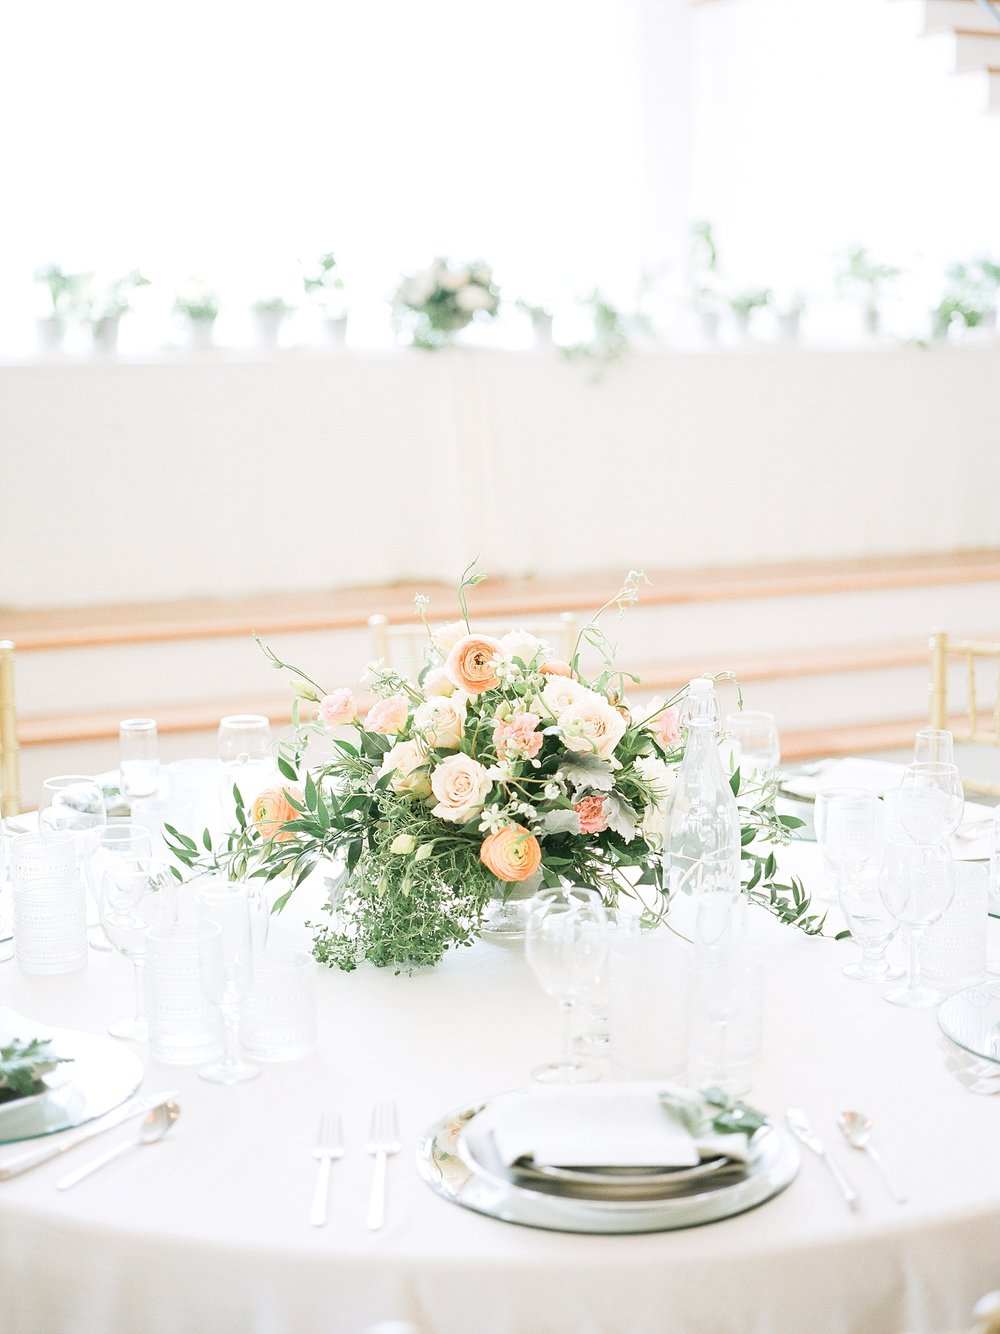 Textural Organic Wedding in All White Venue by Kelsi Kliethermes Wedding Photographer - Missouri, Midwest, and Destinations_0086.jpg